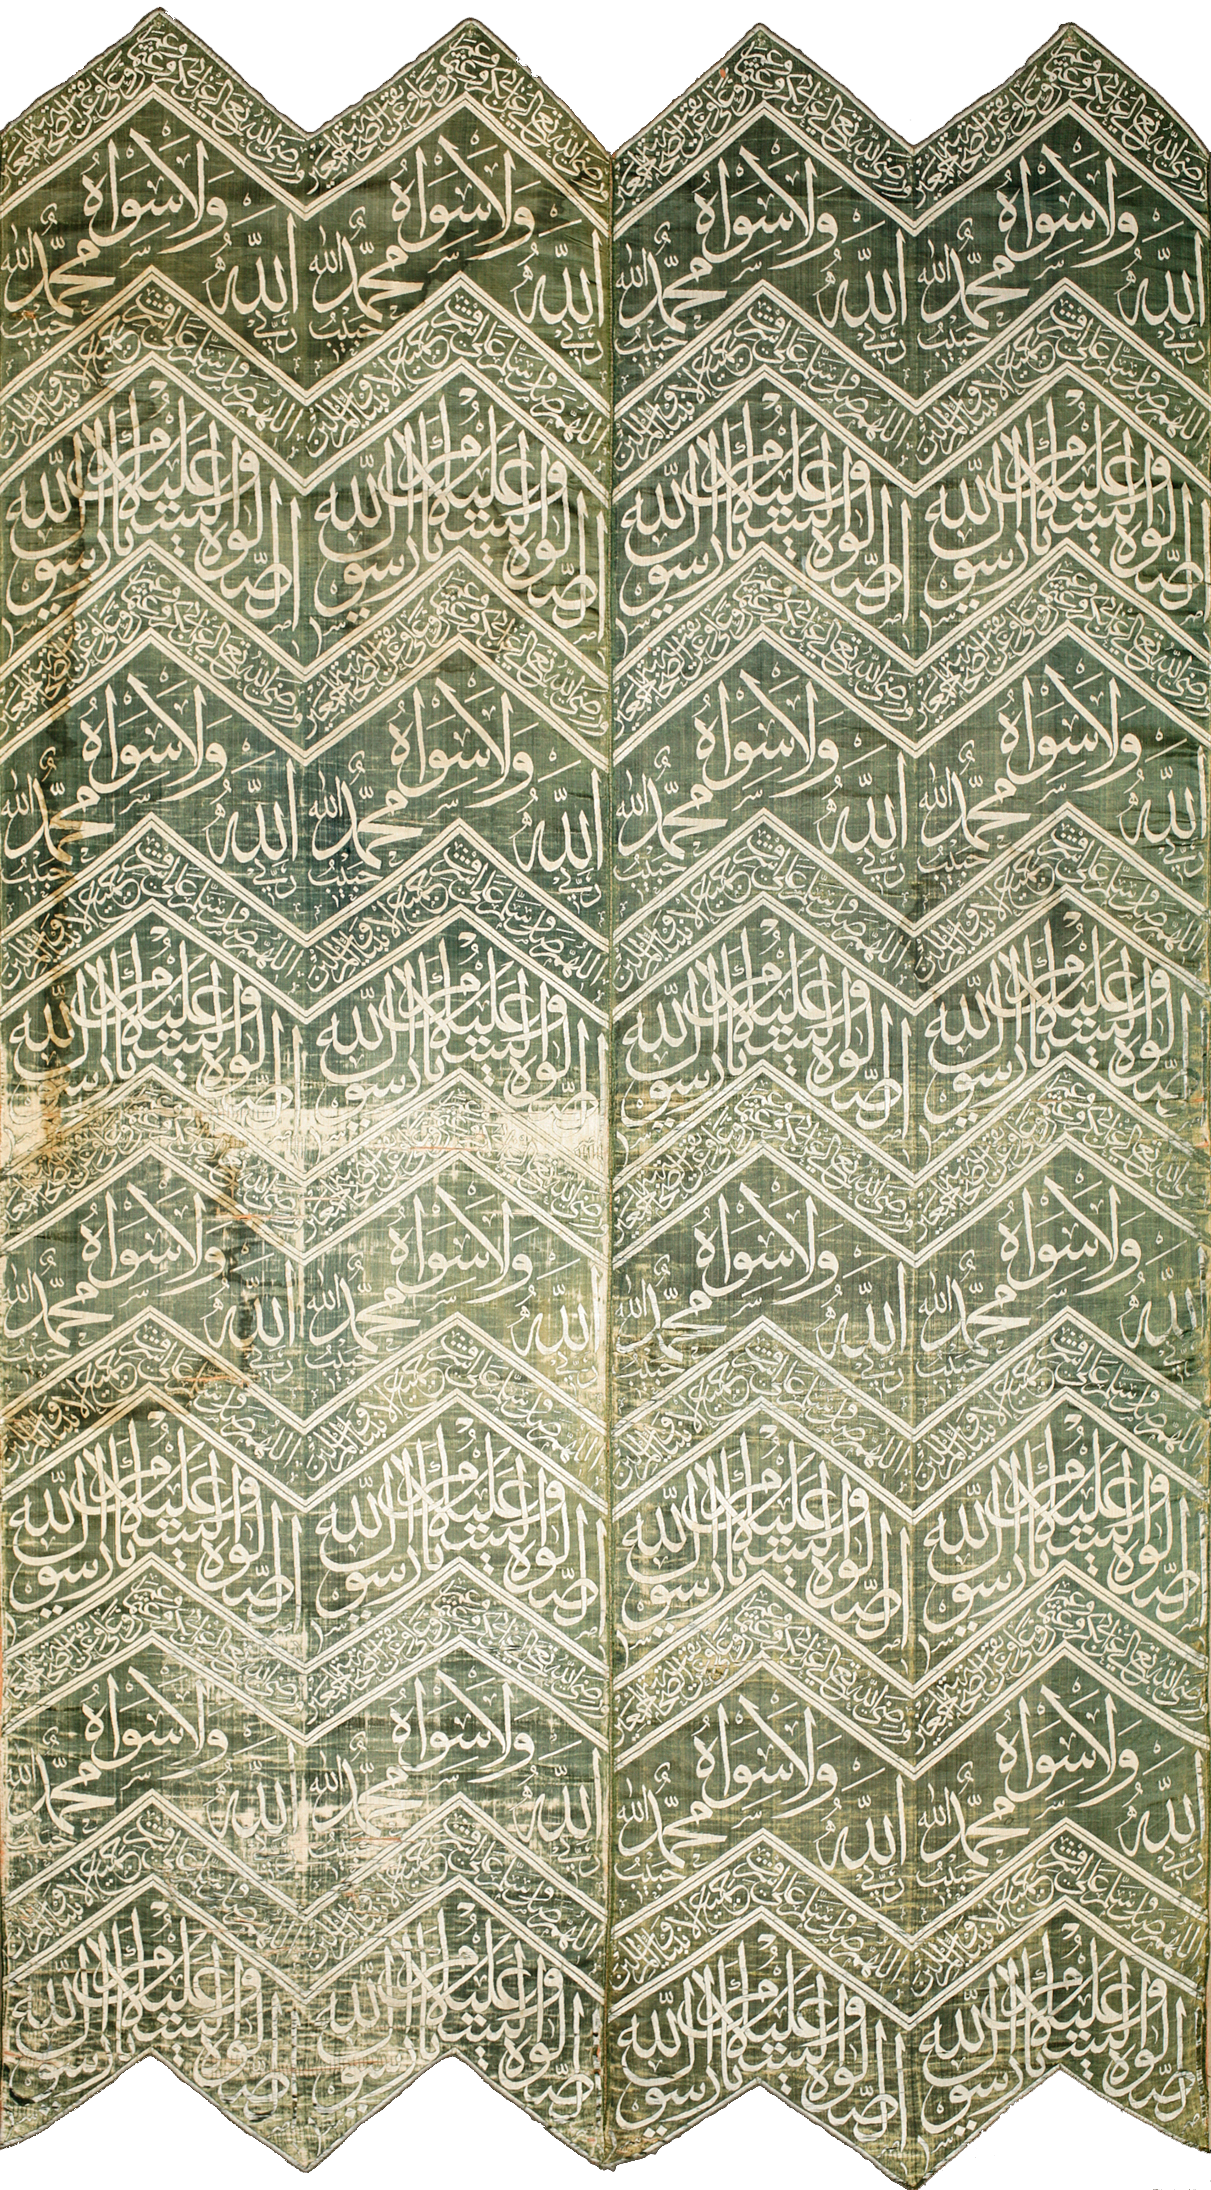 Section of the curtain for the Prophet's tomb chamber in Medina